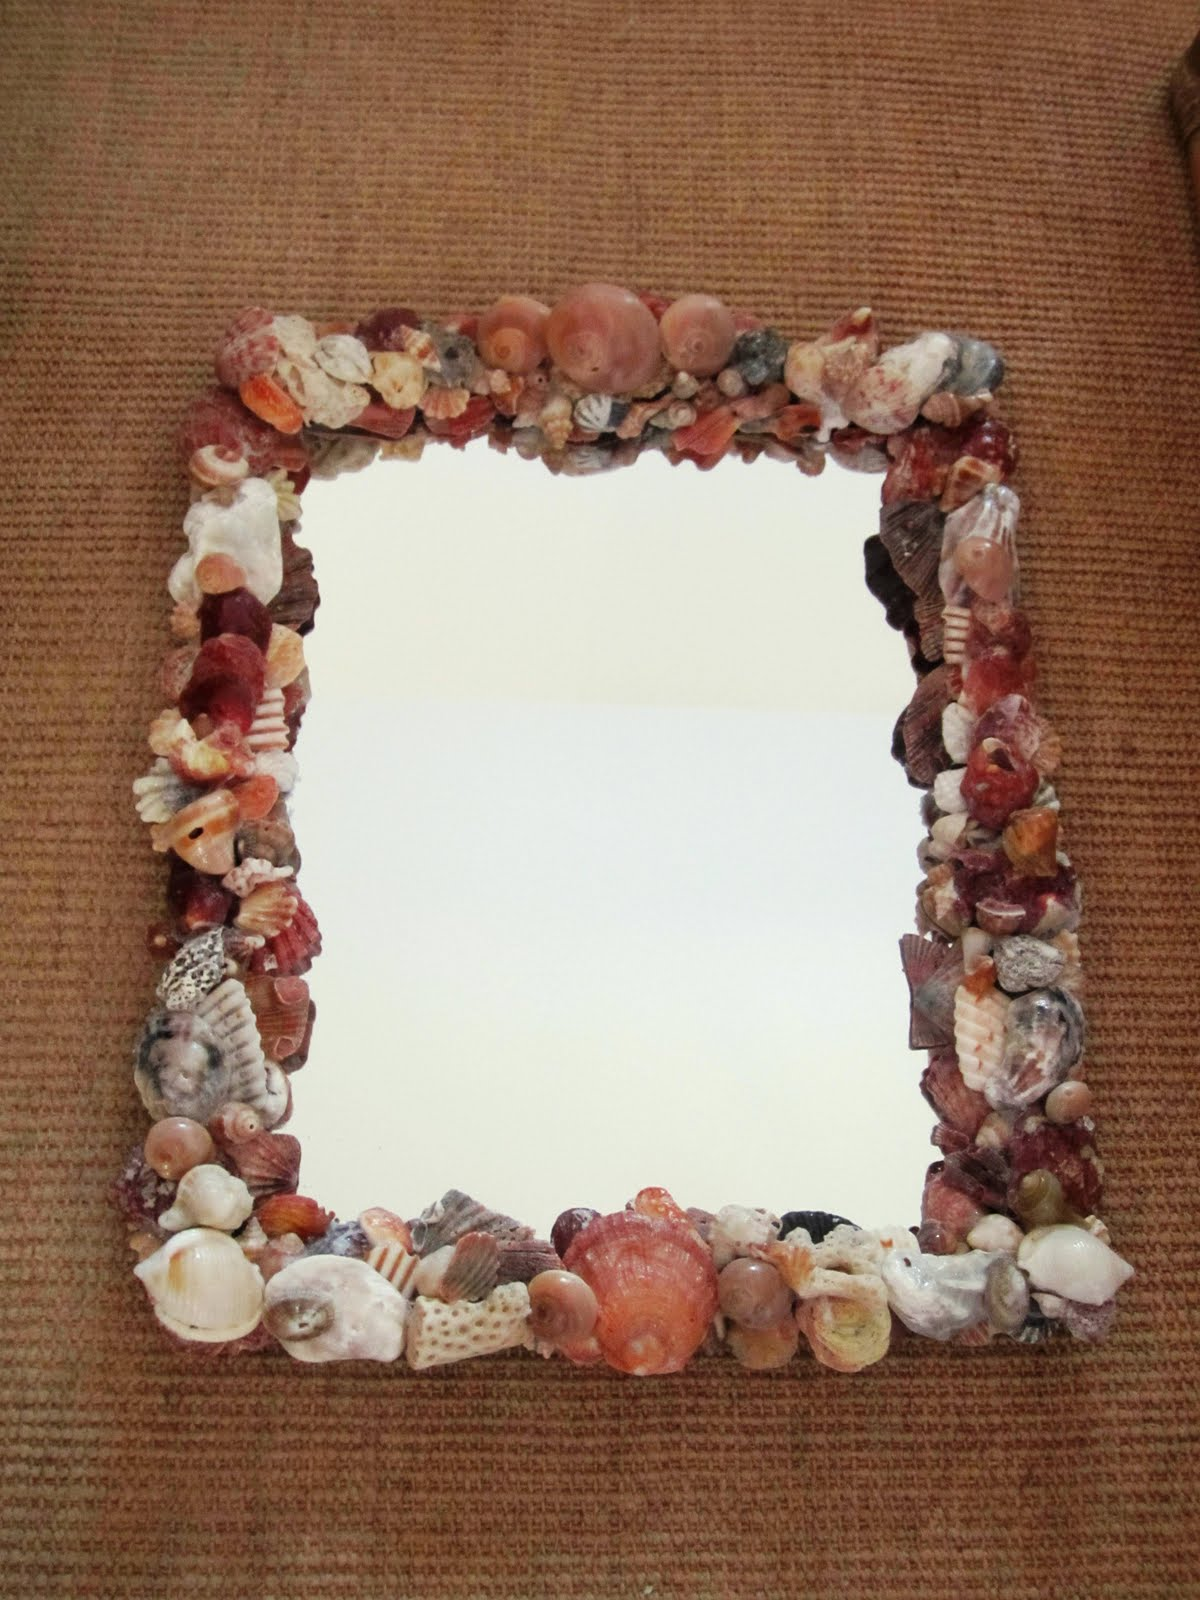 Directions for Making a S Mirror | Joanna Campbell Slan on